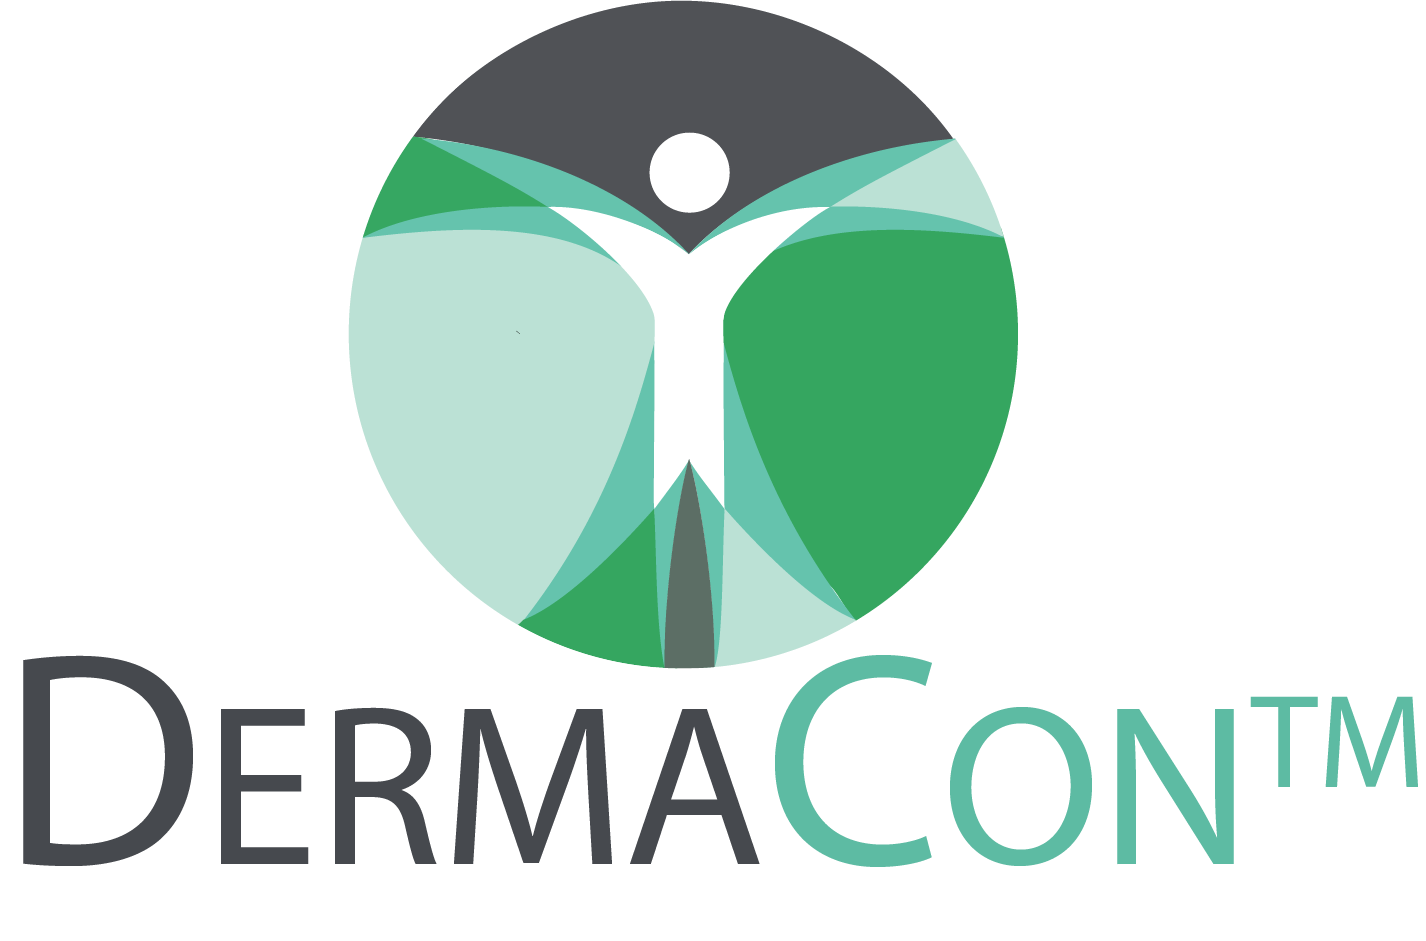 Dermacon Events | The Largest Dermatology Conferences across Canada